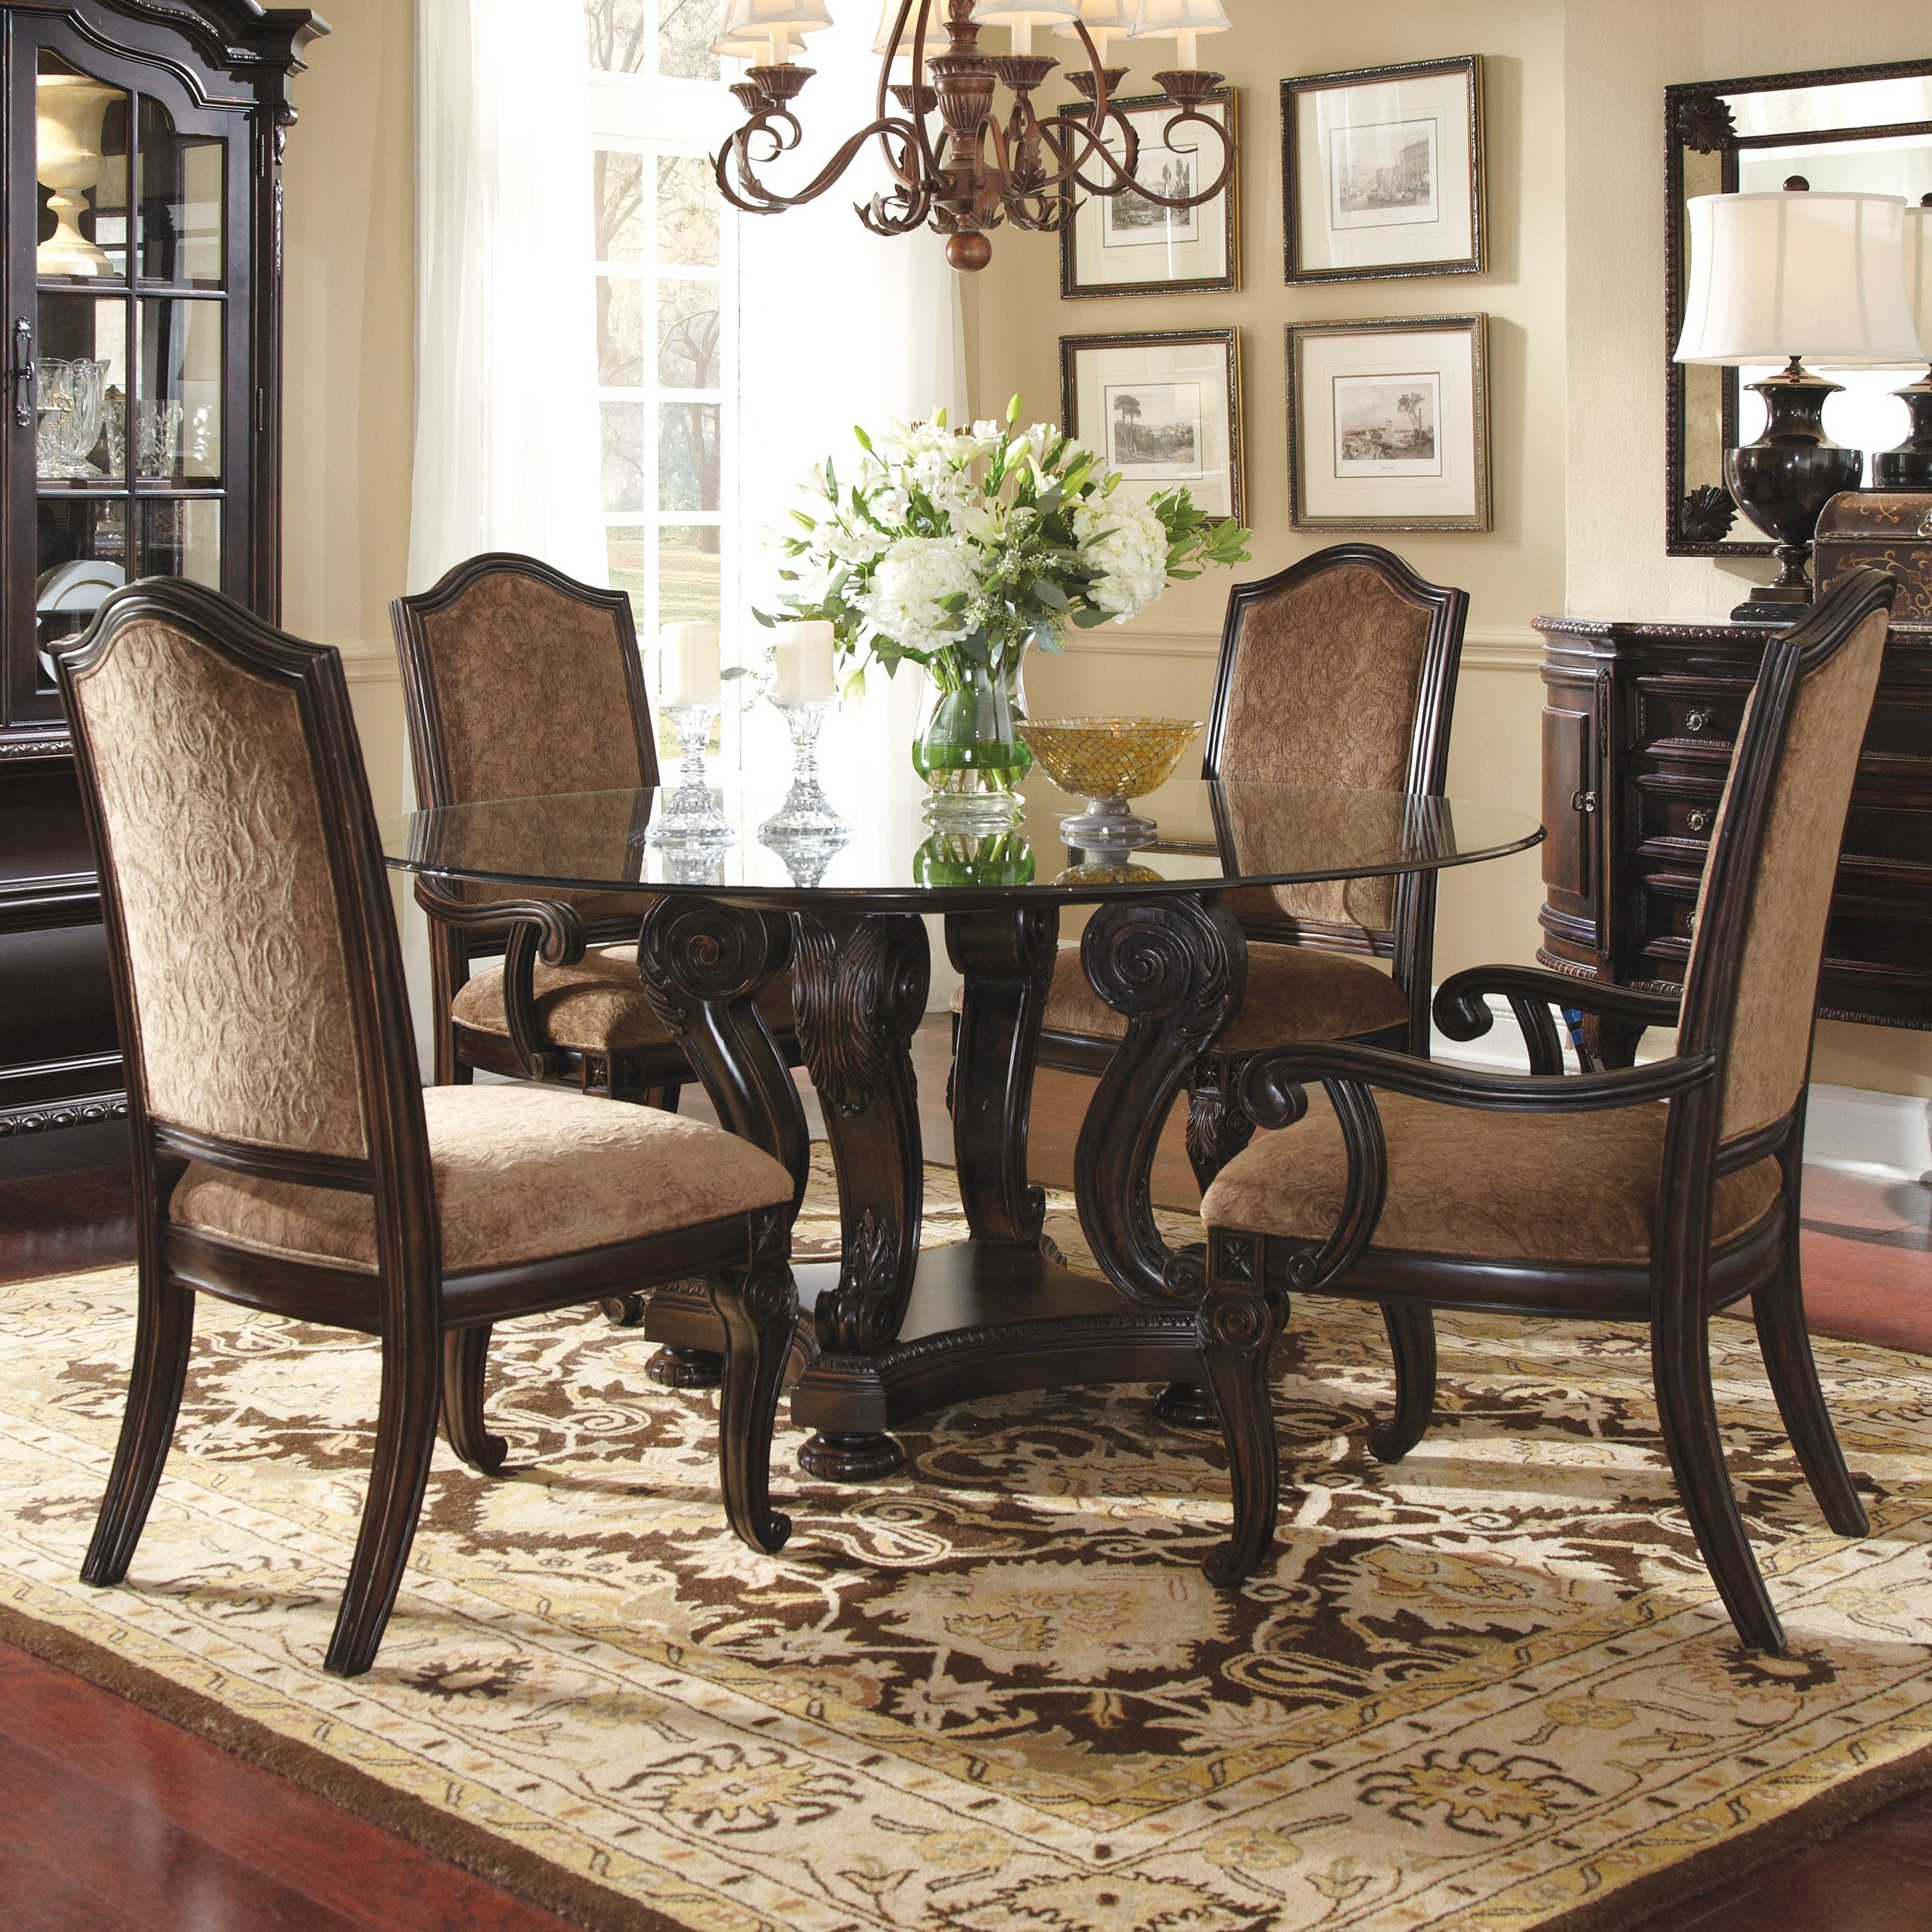 Adorable Round Dining Room Table Sets for 4 – HomesFeed